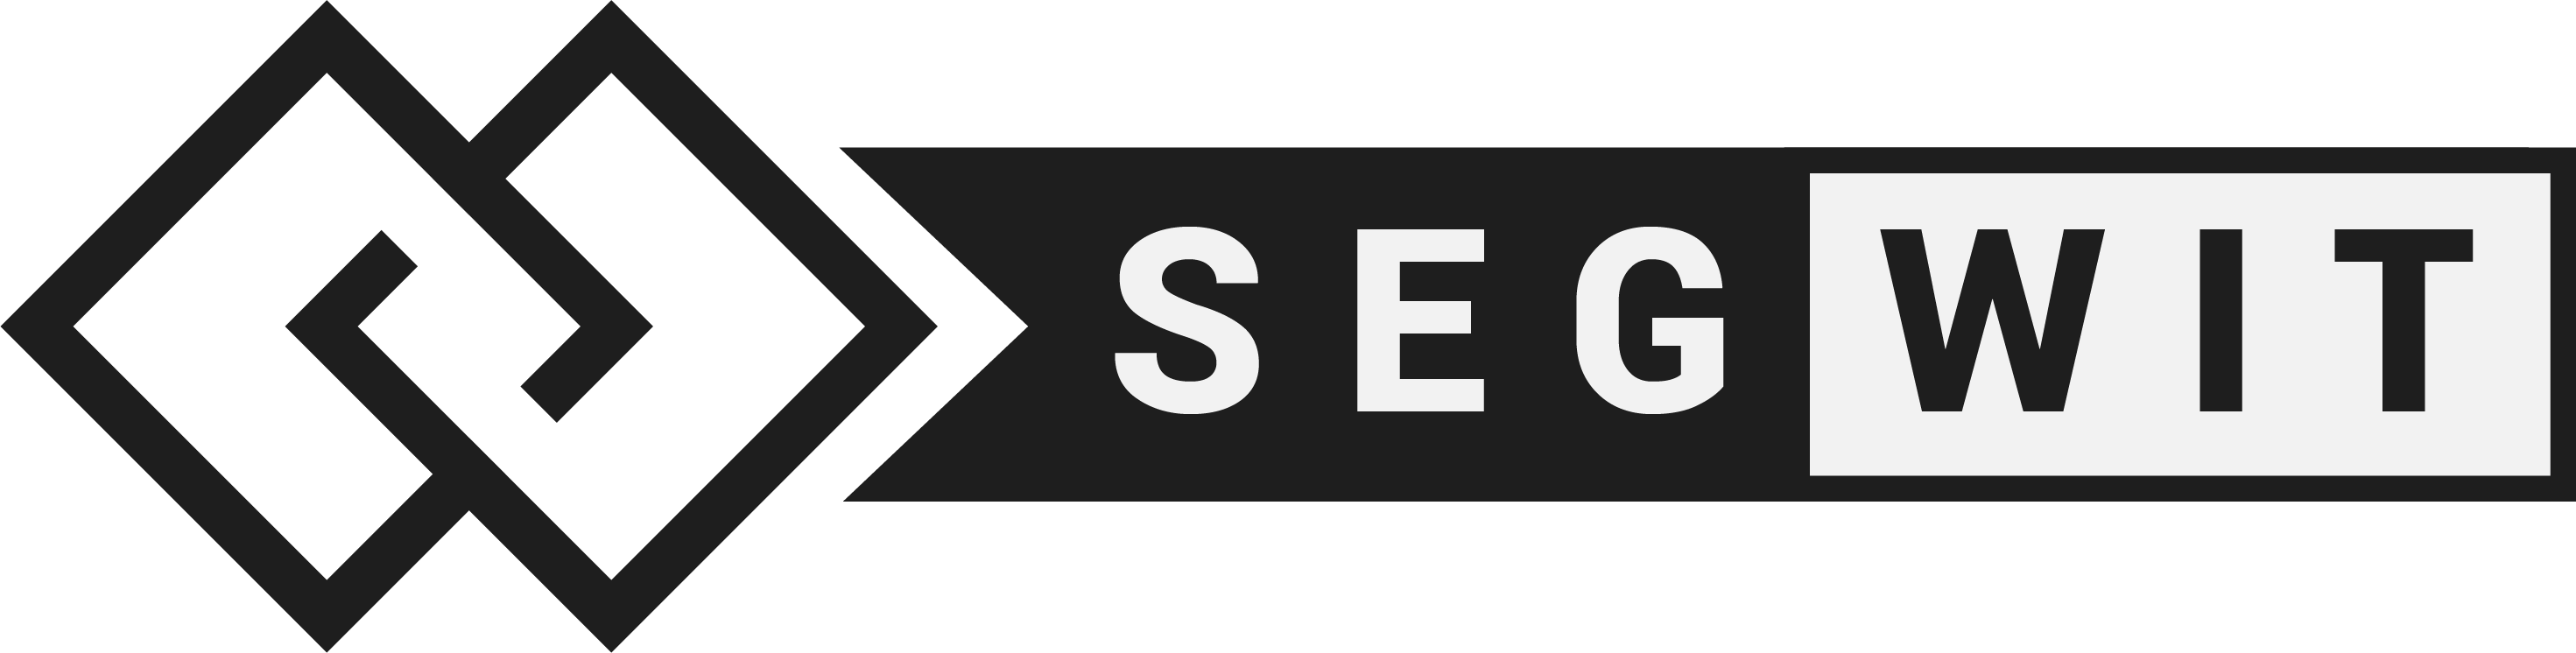 Segregated Witness logo designed by Albert Dros